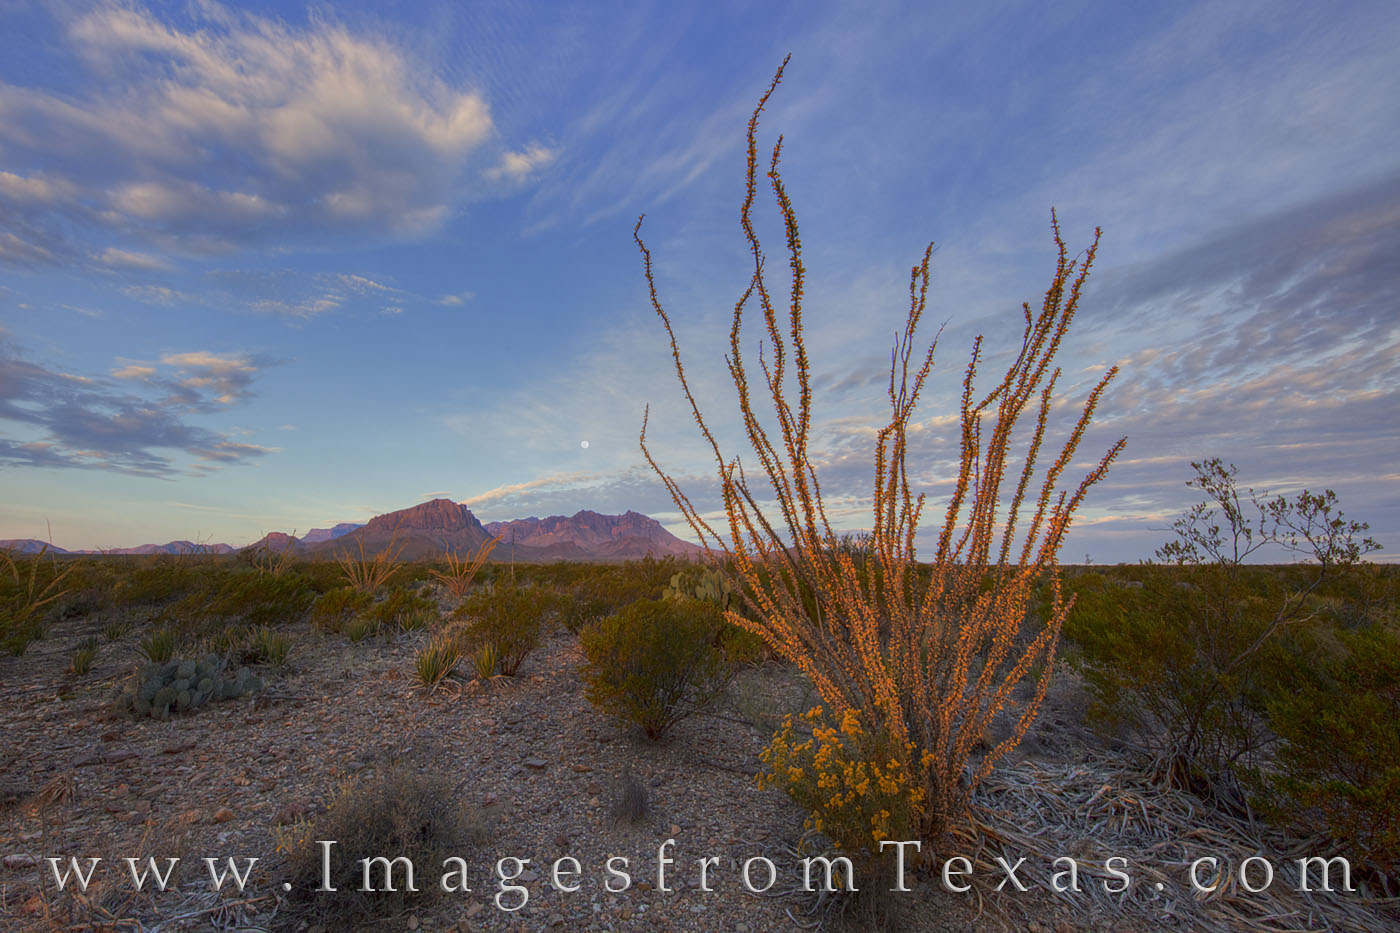 Chisos mountains, big bend national park, ocotillo, moonset, sunrise, chihuahuan desert, texas landscapes, texas hikes, chisos images, big bend images, texas national parks, photo